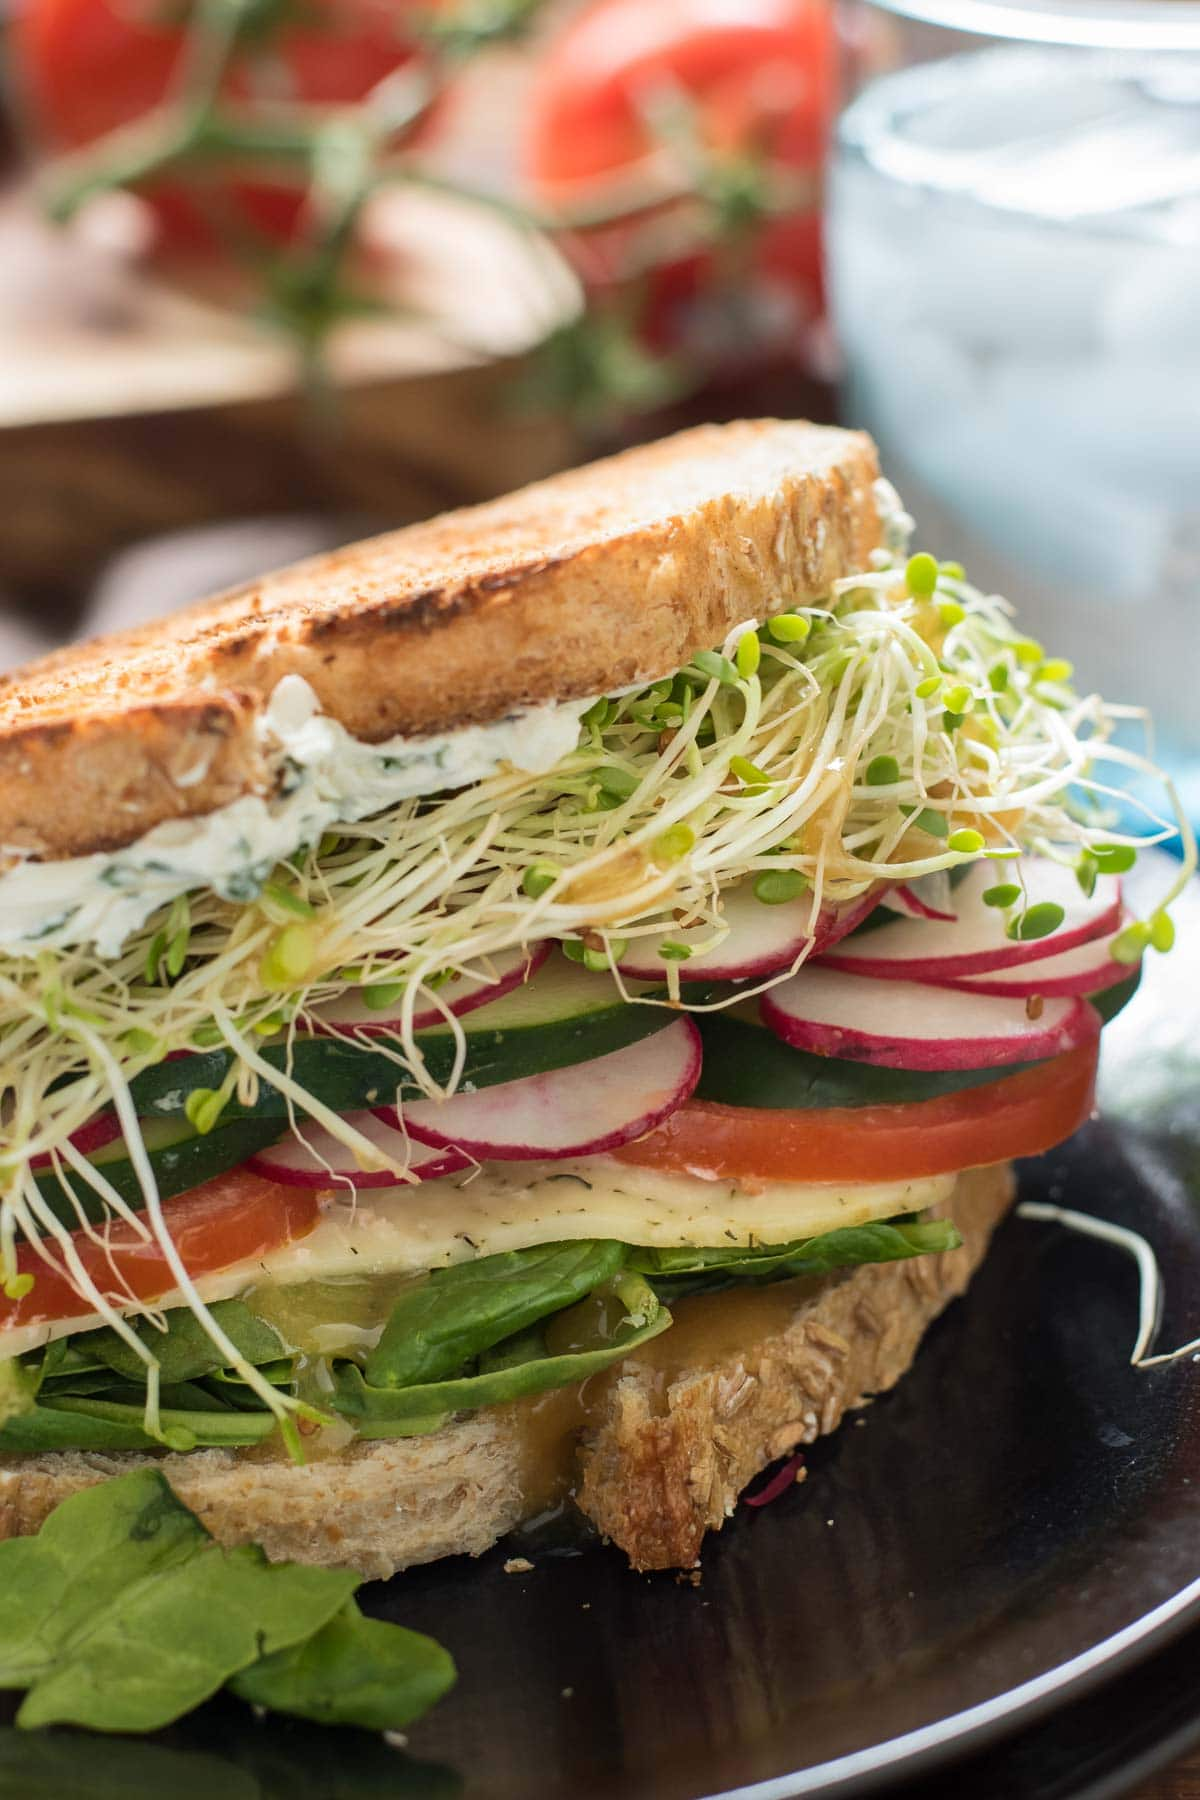 Use all of that fresh summer produce to make the best veggie sandwiches!